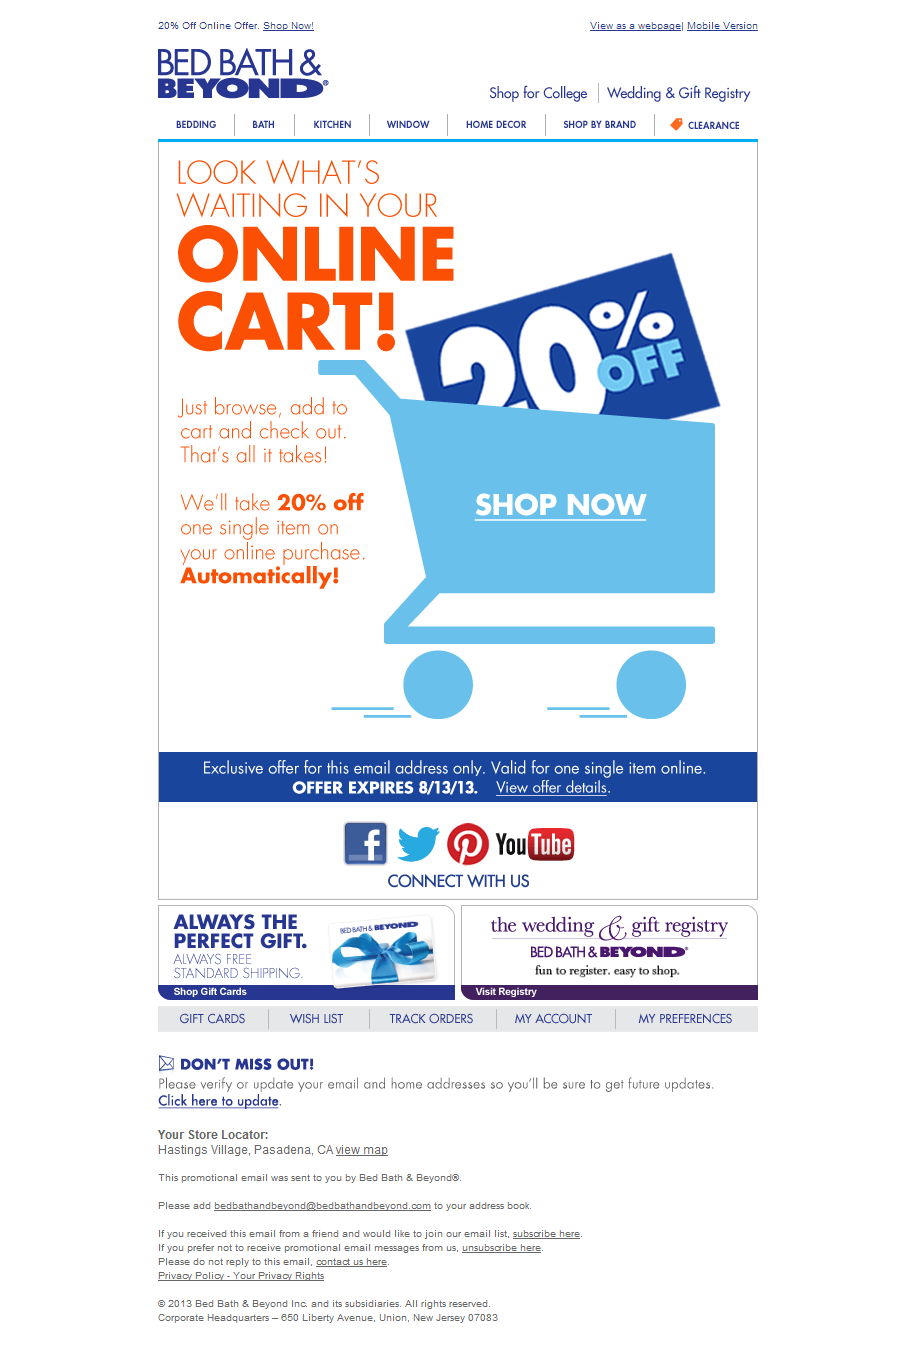 Bed Bath Beyond Abandoned Cart Email Shopping Cart Abandonment